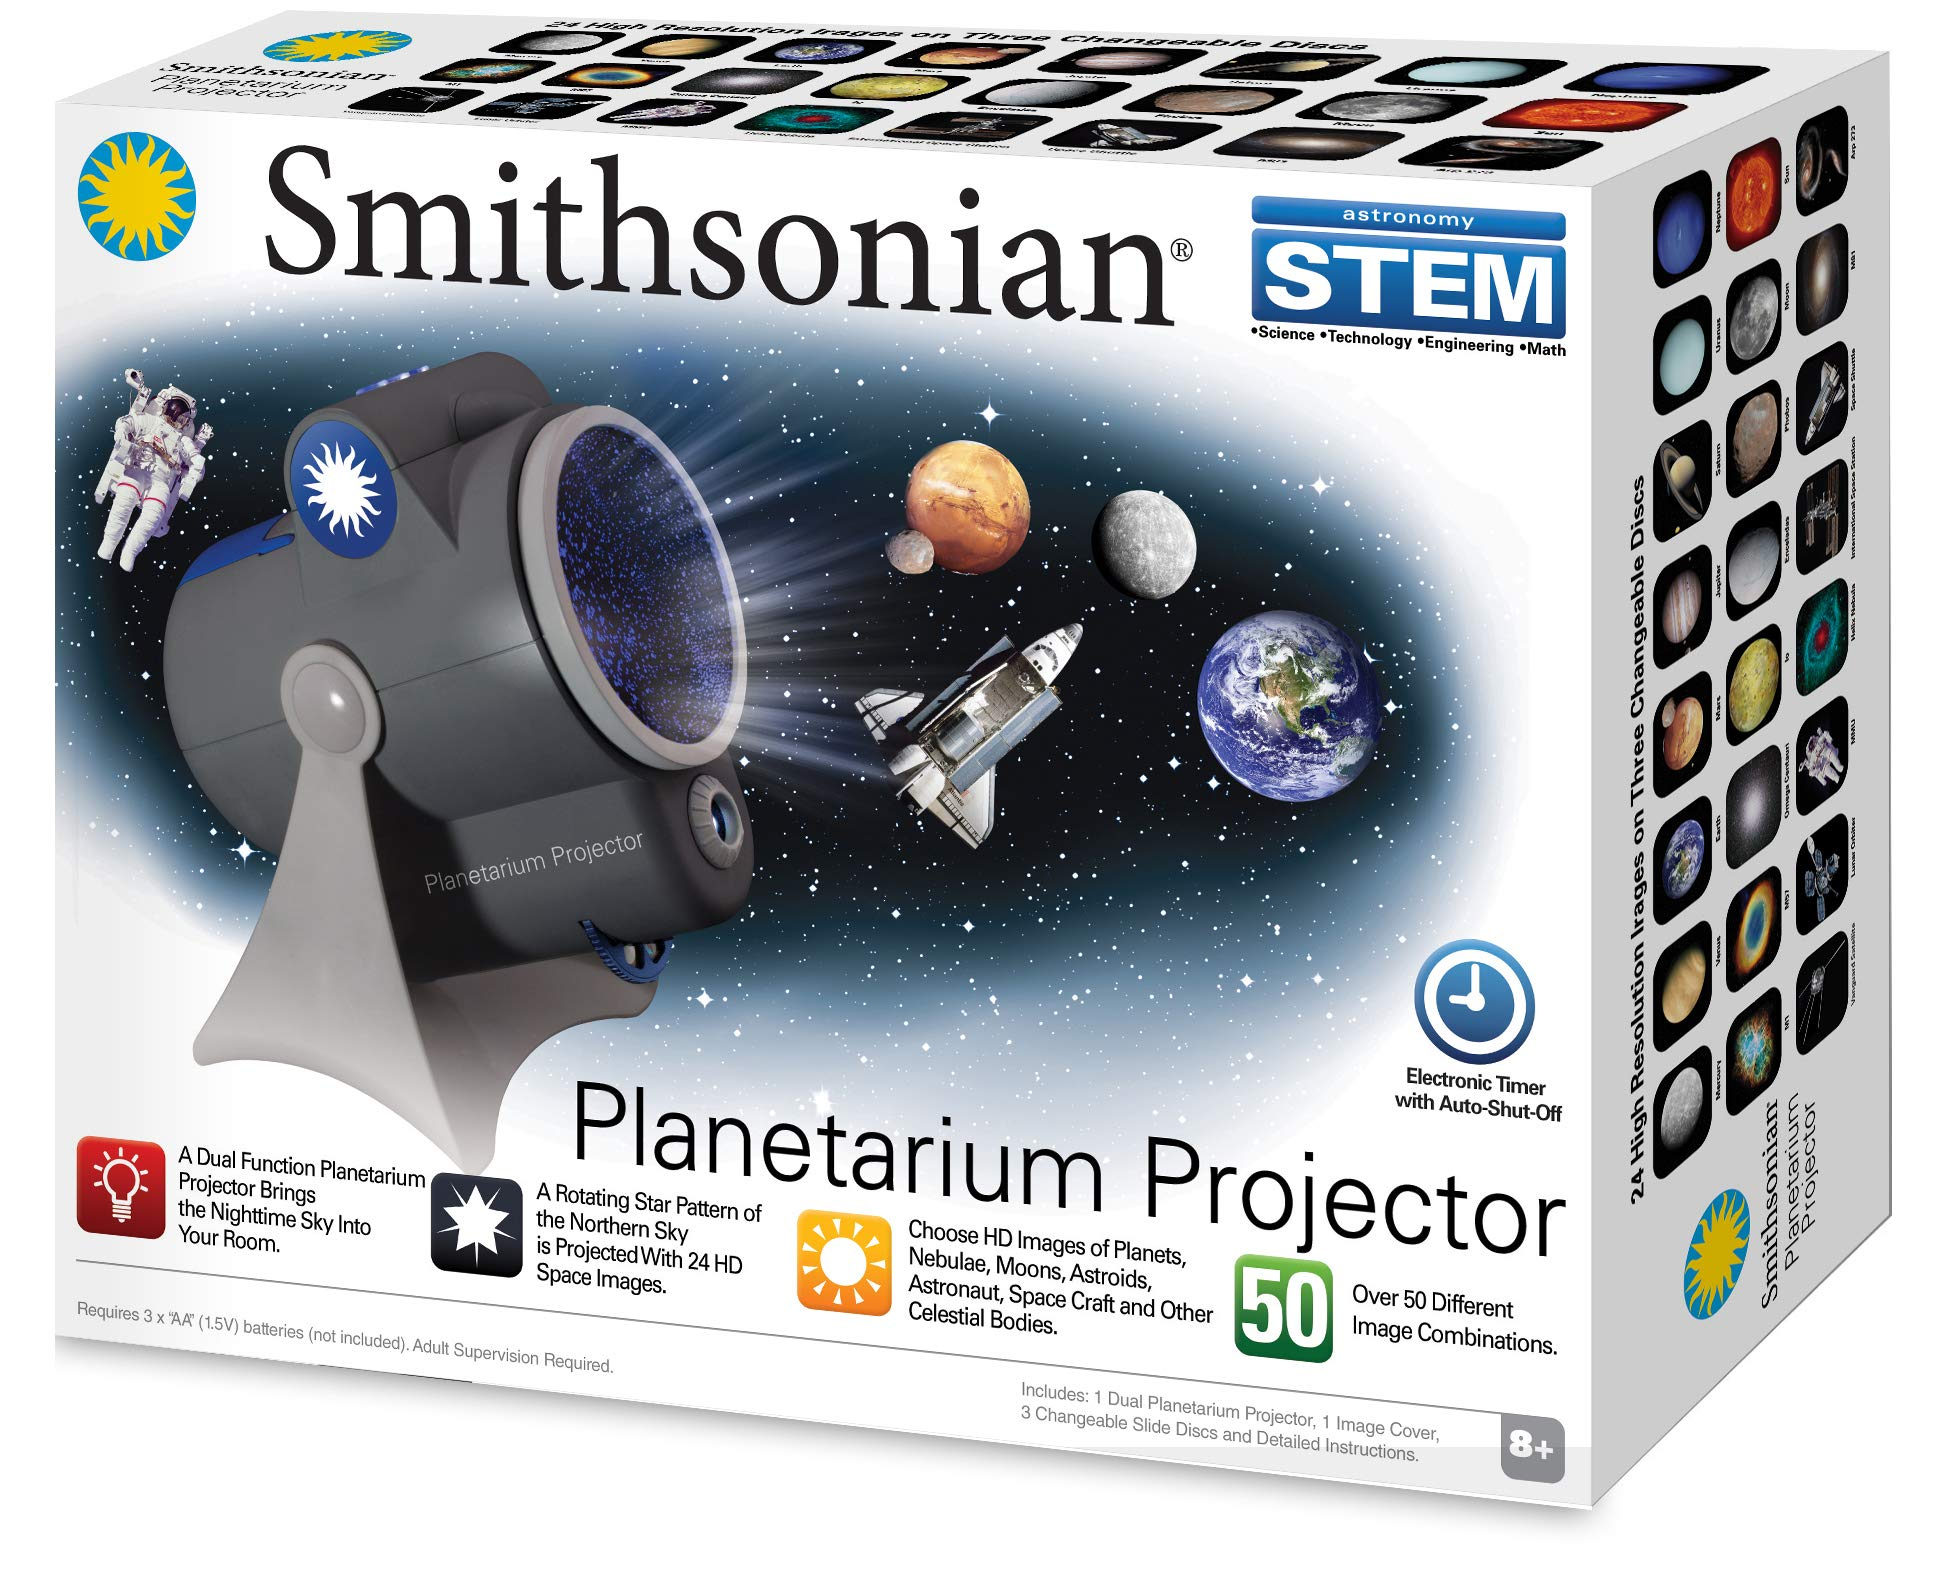 Smithsonian Optics Room Planetarium and Dual Projector Science Kit, Black/Blue by Smithsonian